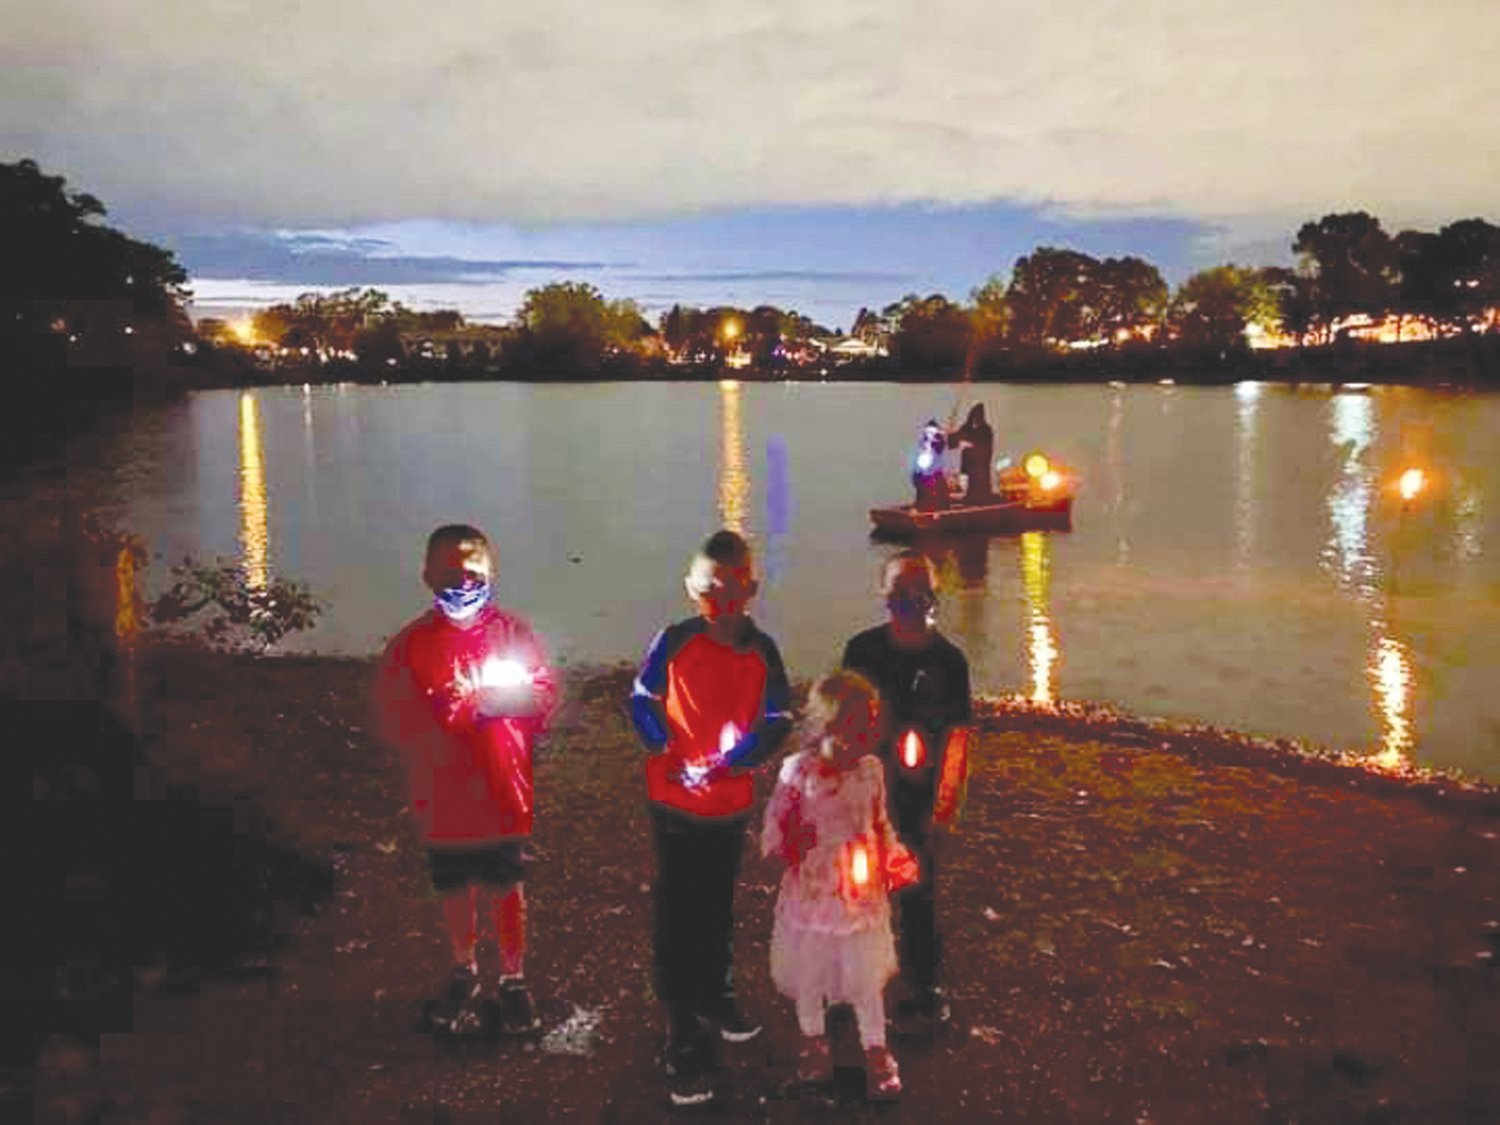 BY LAND AND POND: Dressed for the occasion Sand Pond neighbors celebrated Halloween Oct. 24.